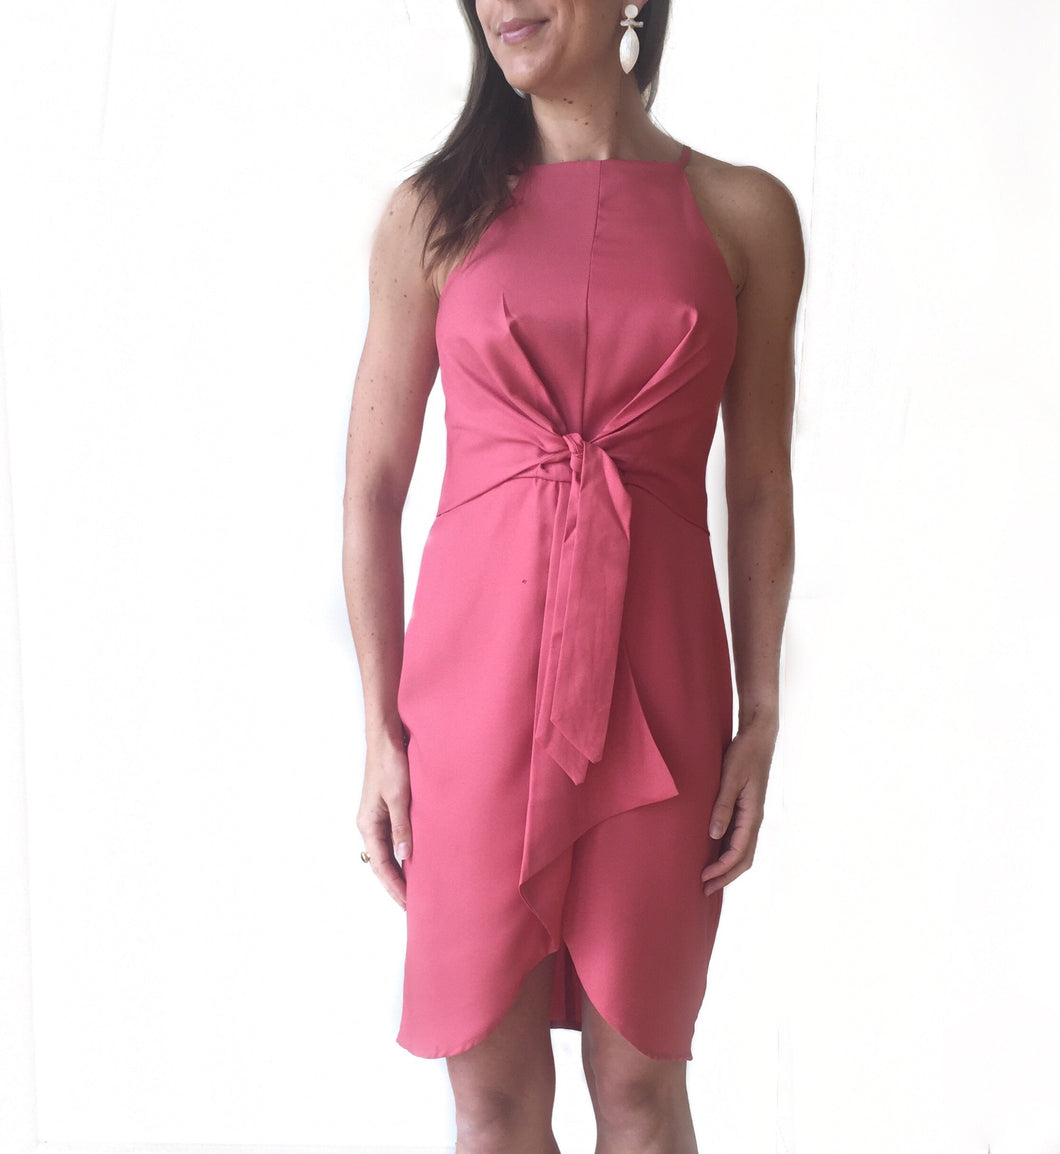 MR Mauve Knotted Front Dress